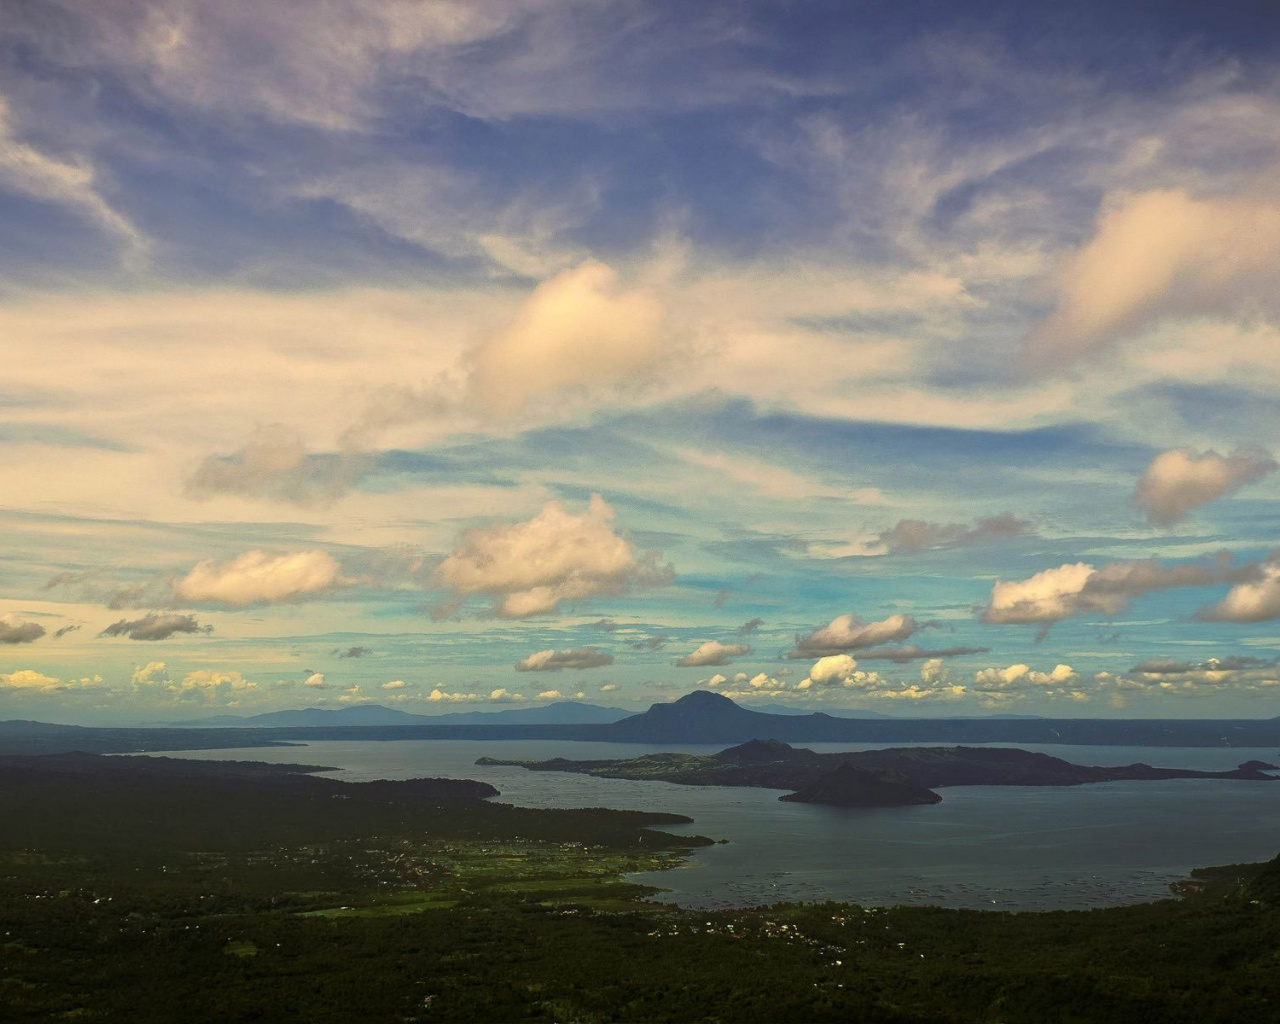 1280x1024 taal volcano philippines desktop pc and mac for Wallpaper home philippines